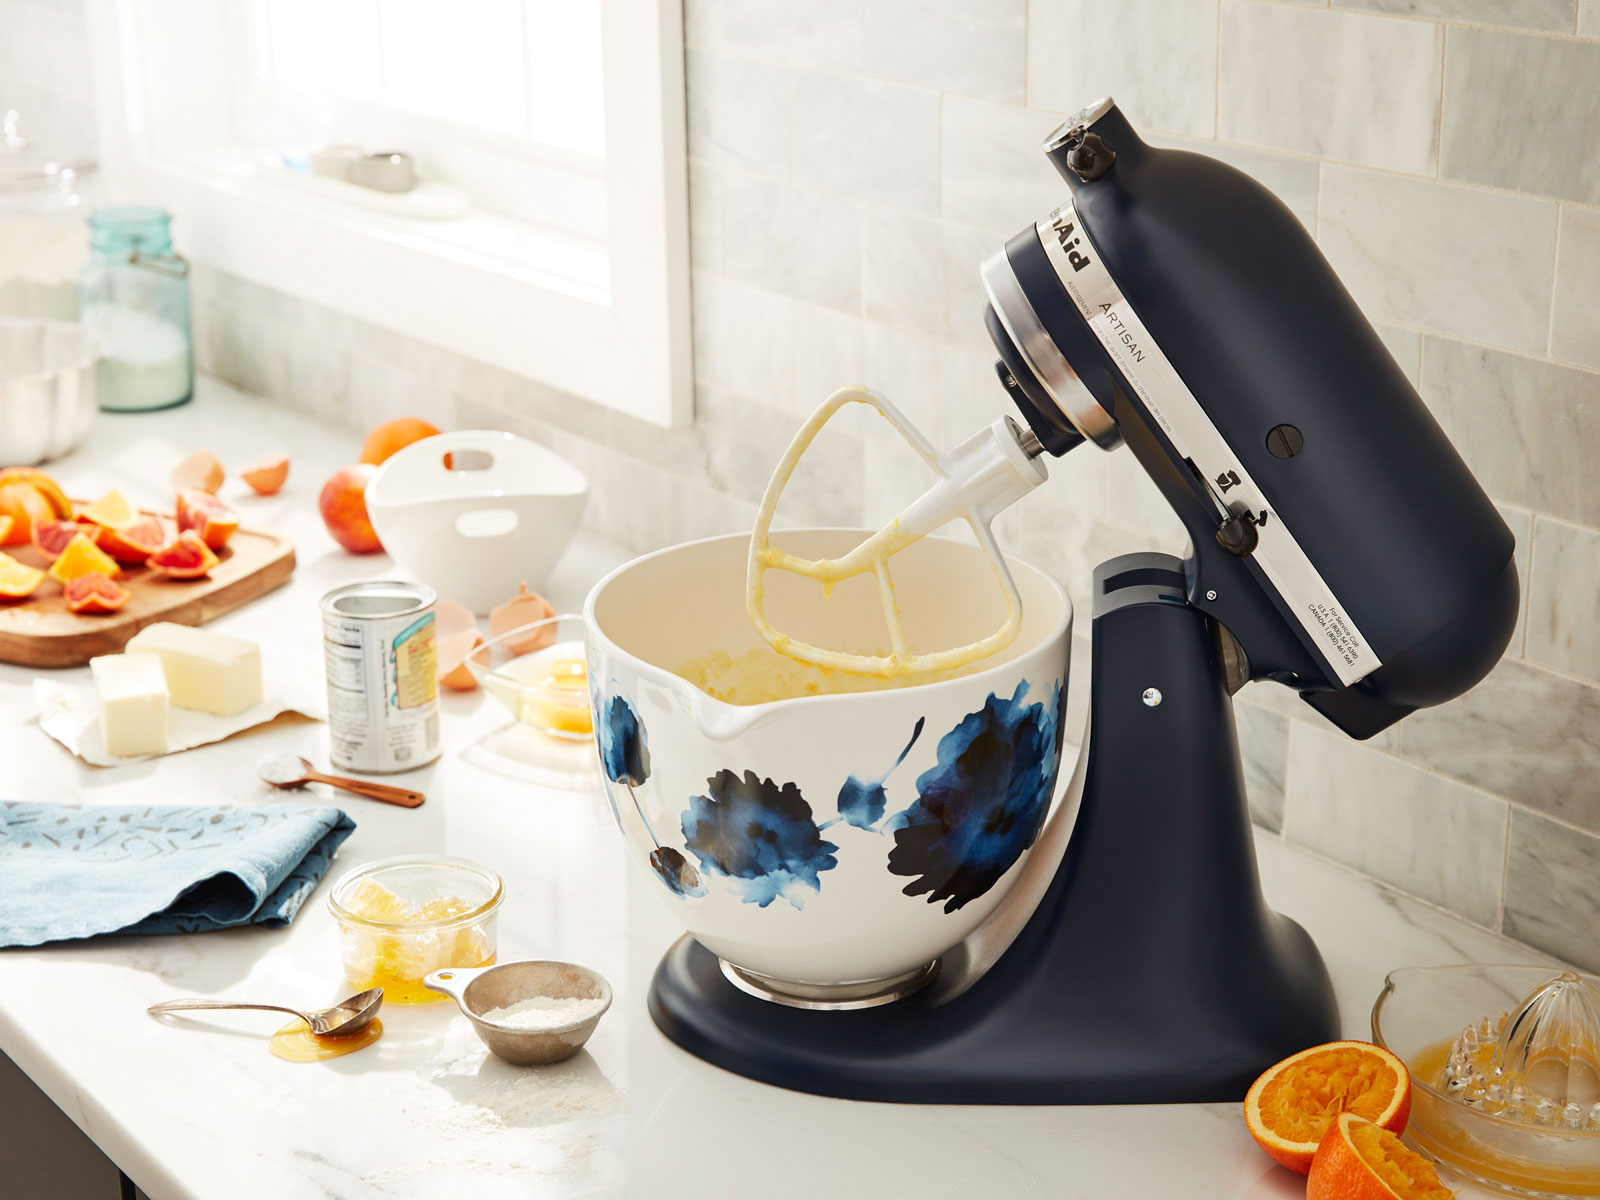 You Can Now Customize and Engrave Your KitchenAid Stand Mixer | Food & Wine